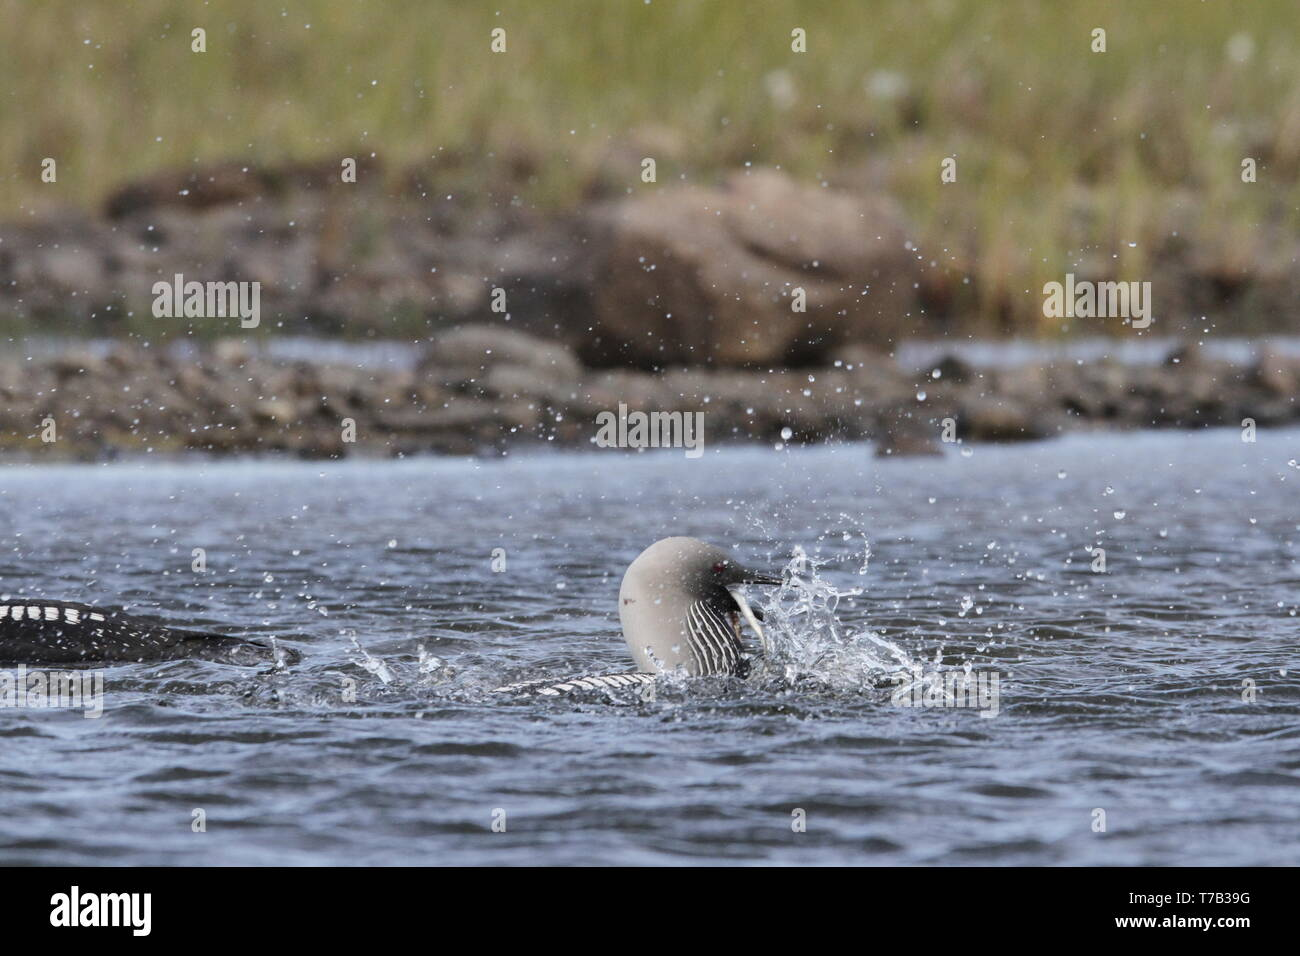 Pacific Loon or Pacific Diver catching a fish while thrashing around in arctic waters, near Arviat Nunavut, Canada - Stock Image